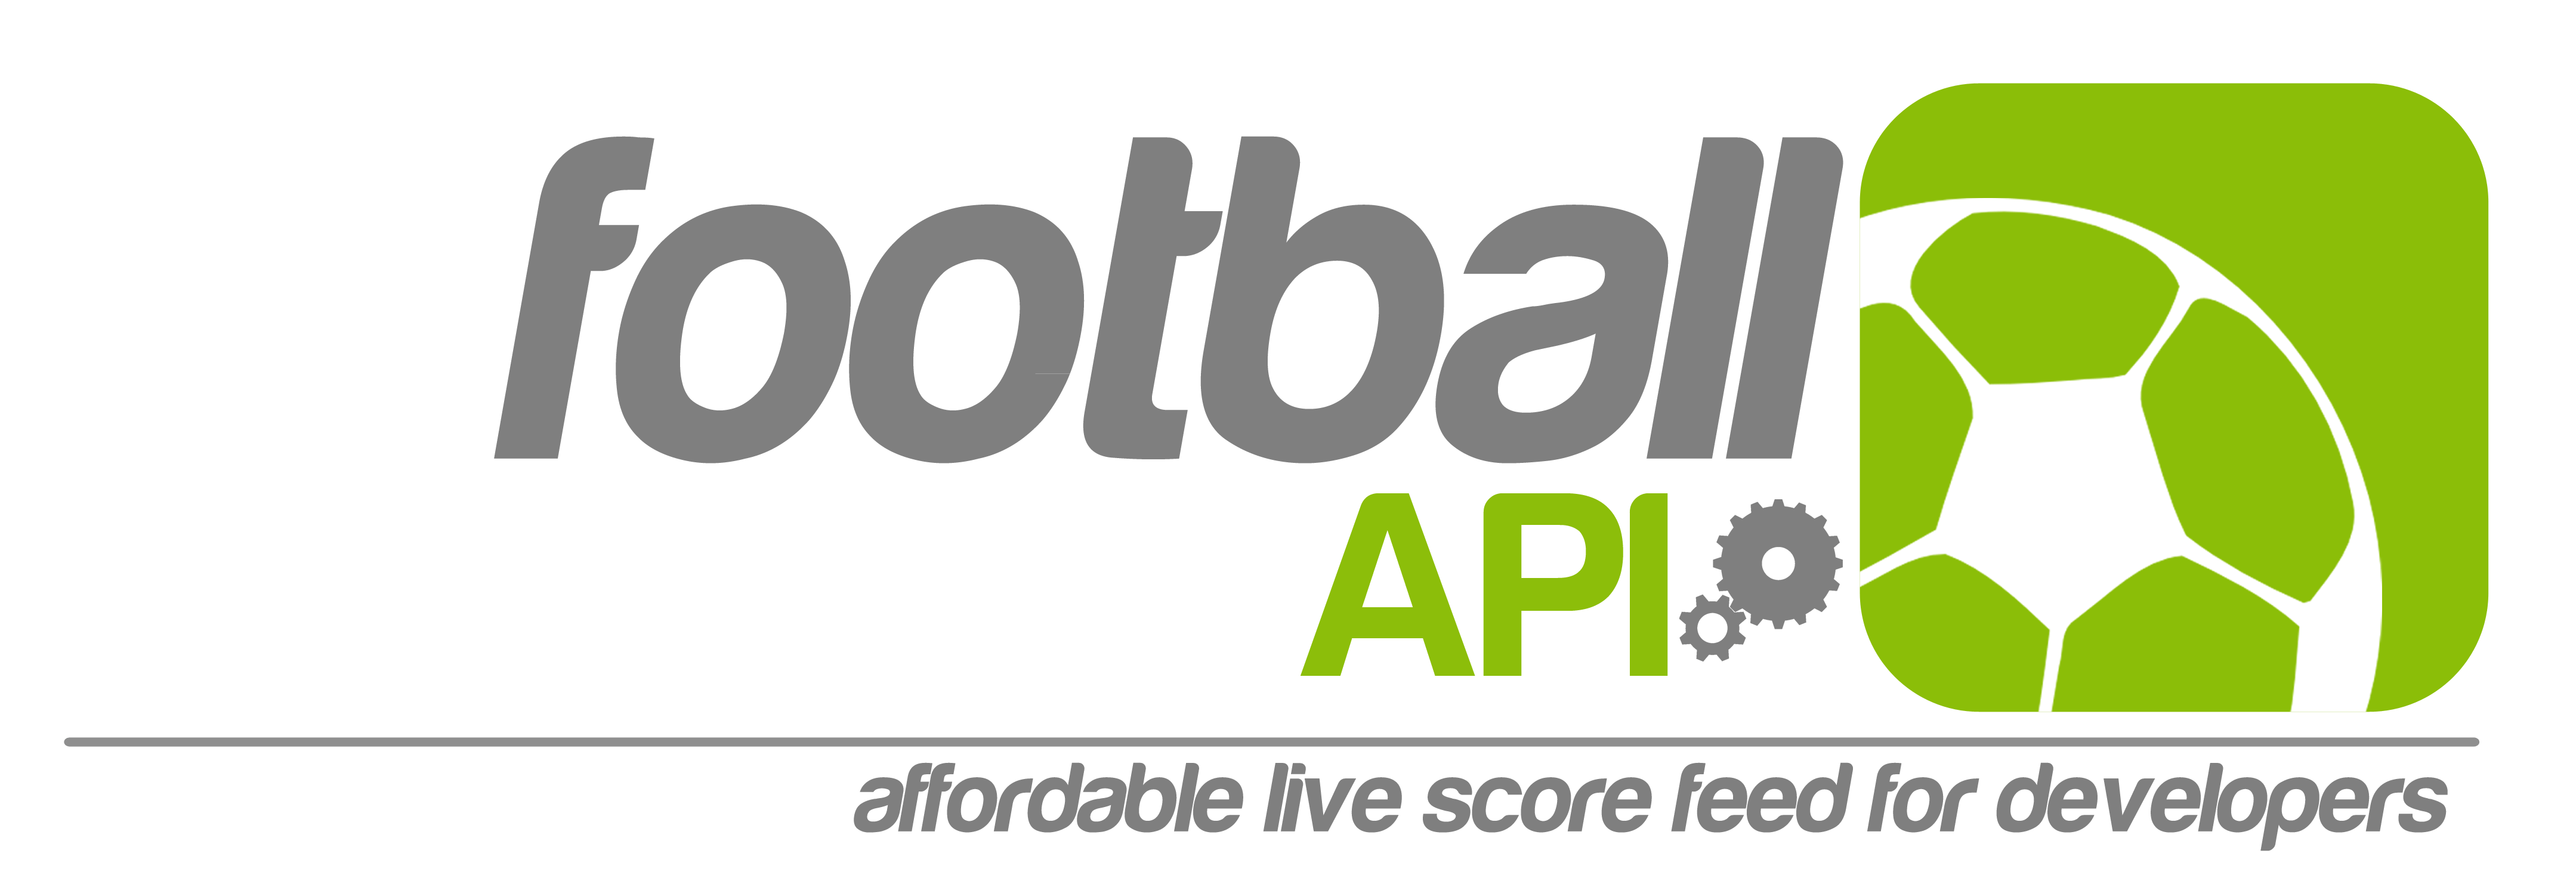 Sofascore Api Football Api Affordable Football Live Feed For Developers